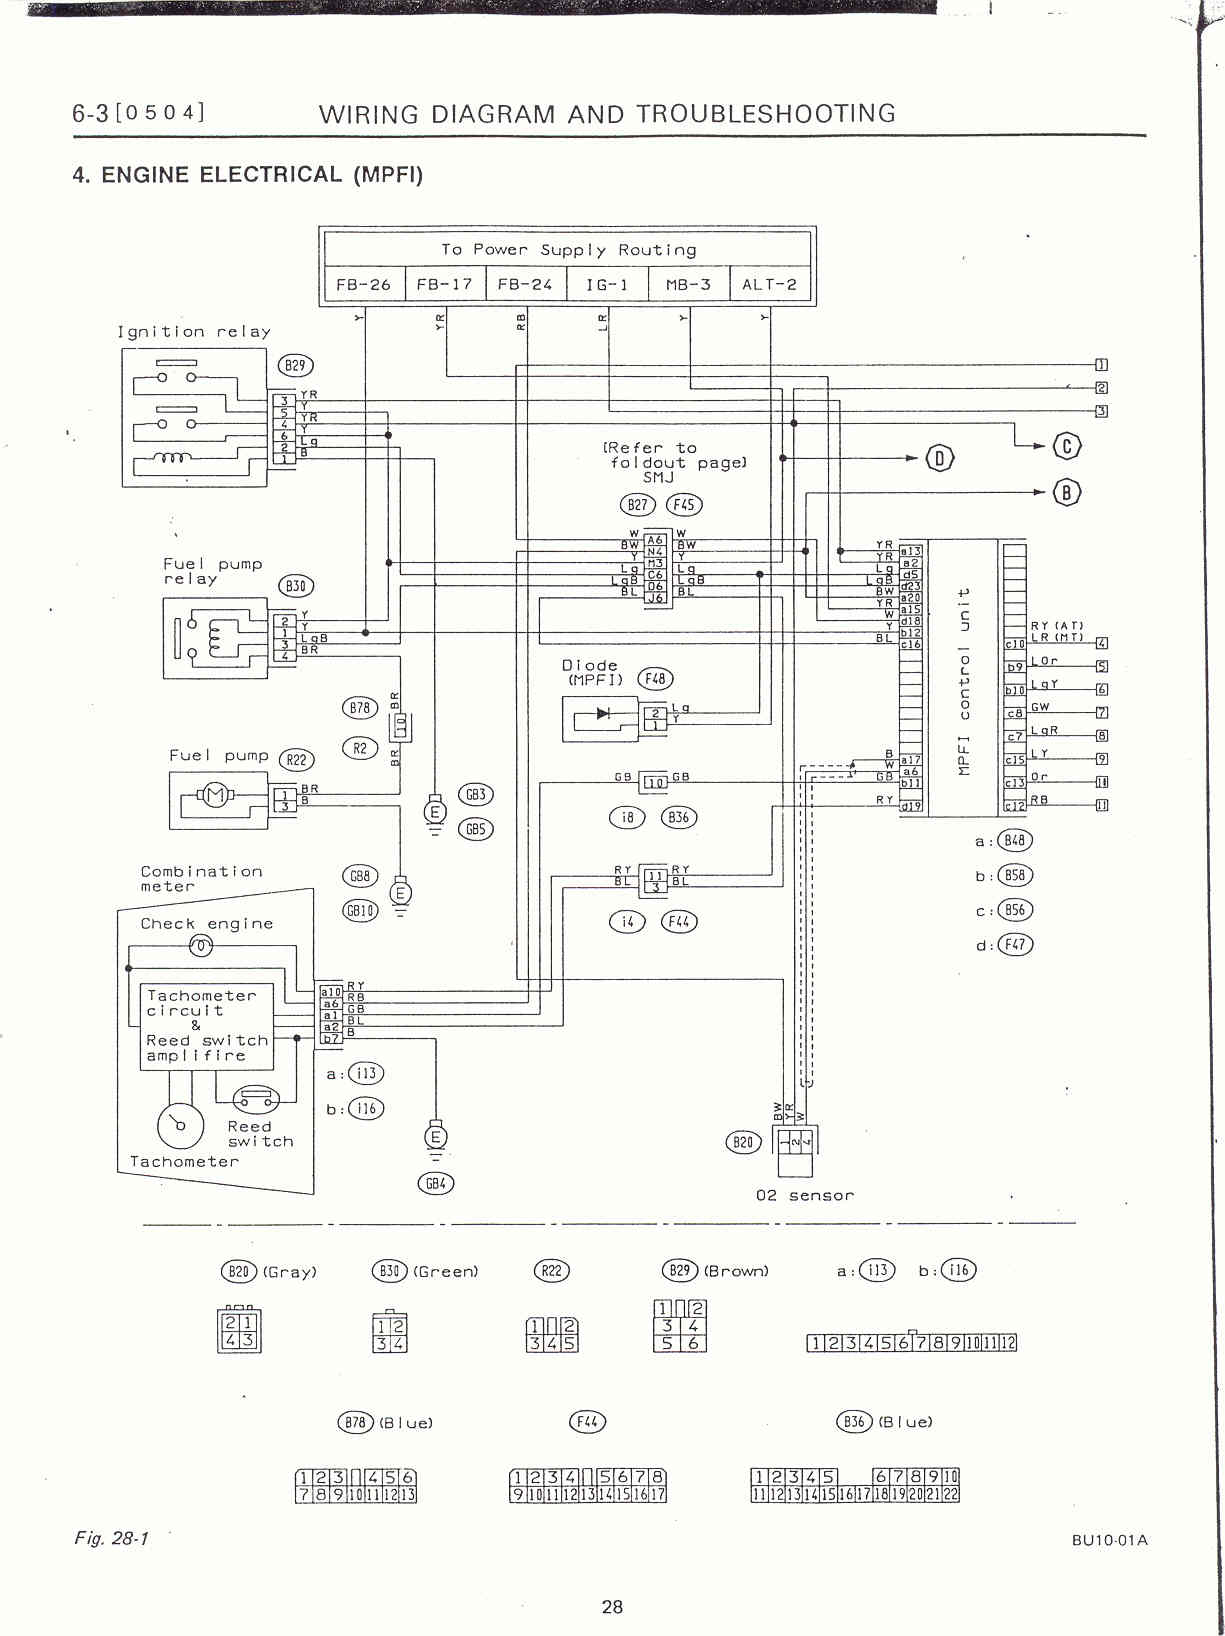 subaru wiring diagram 2008 subaru wiring diagram hecho fuel delivery issues svx - 1990 to present legacy, impreza ... #7